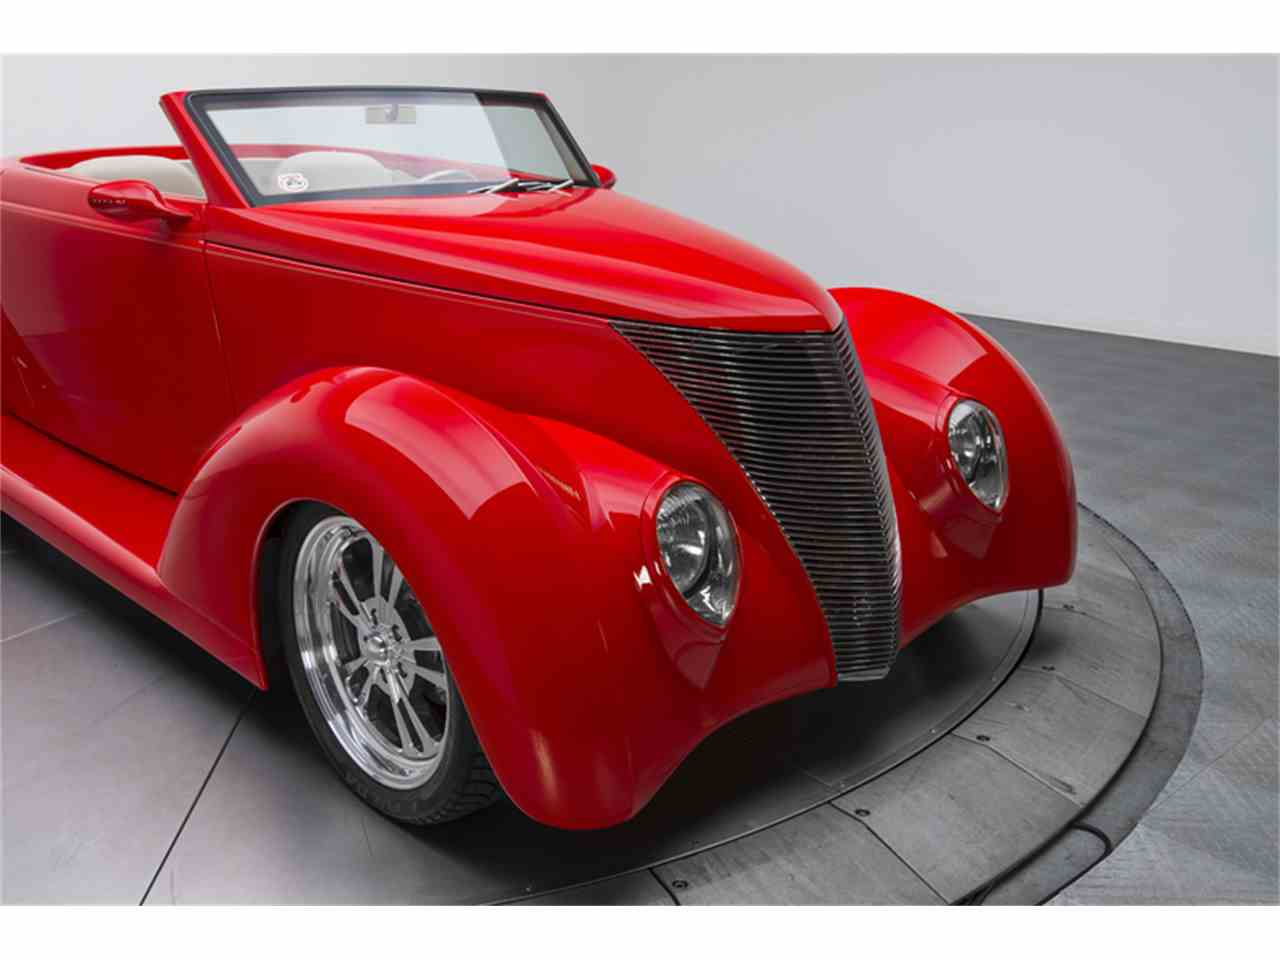 Large Picture of Classic '37 Ford Roadster located in North Carolina - $69,900.00 - JRMV